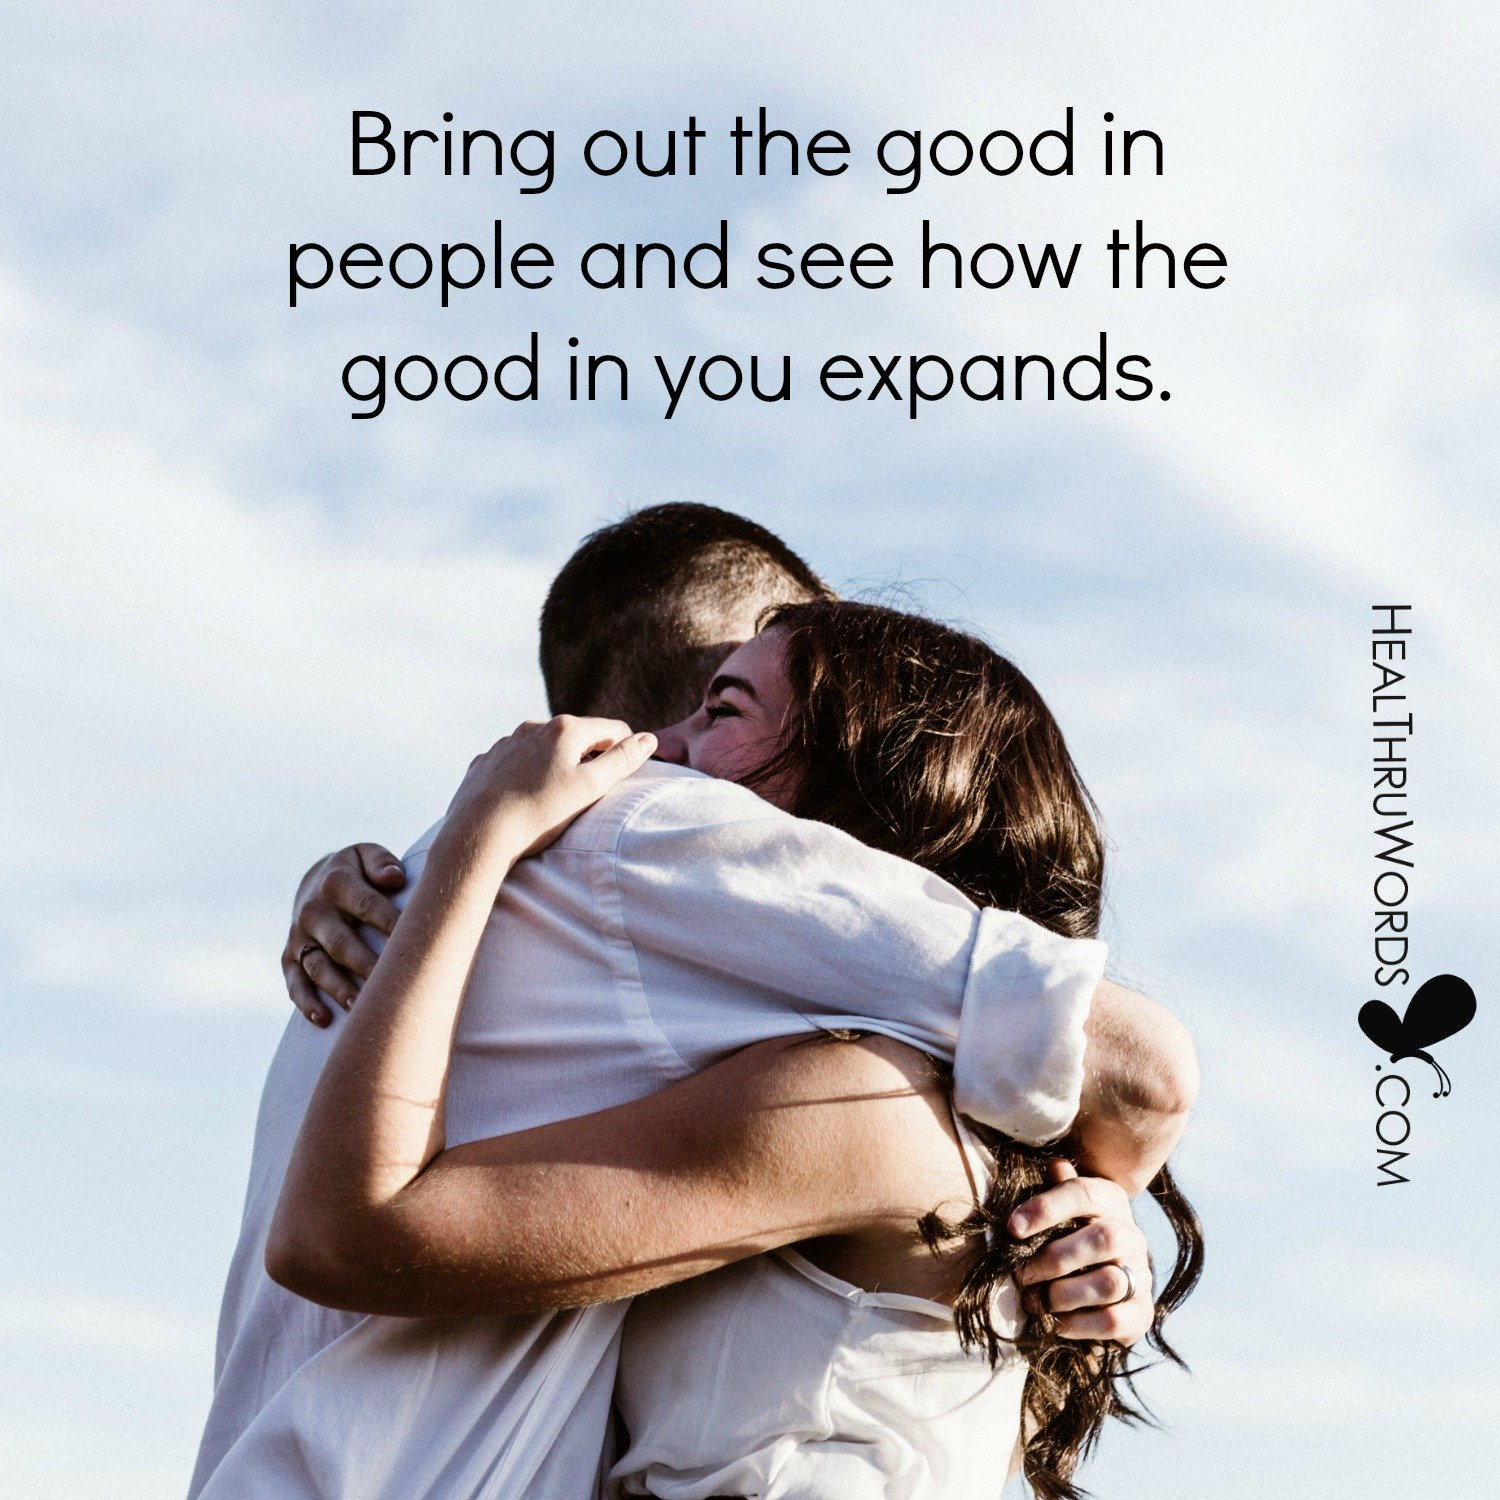 Inspirational Image: Goodness In Everyone